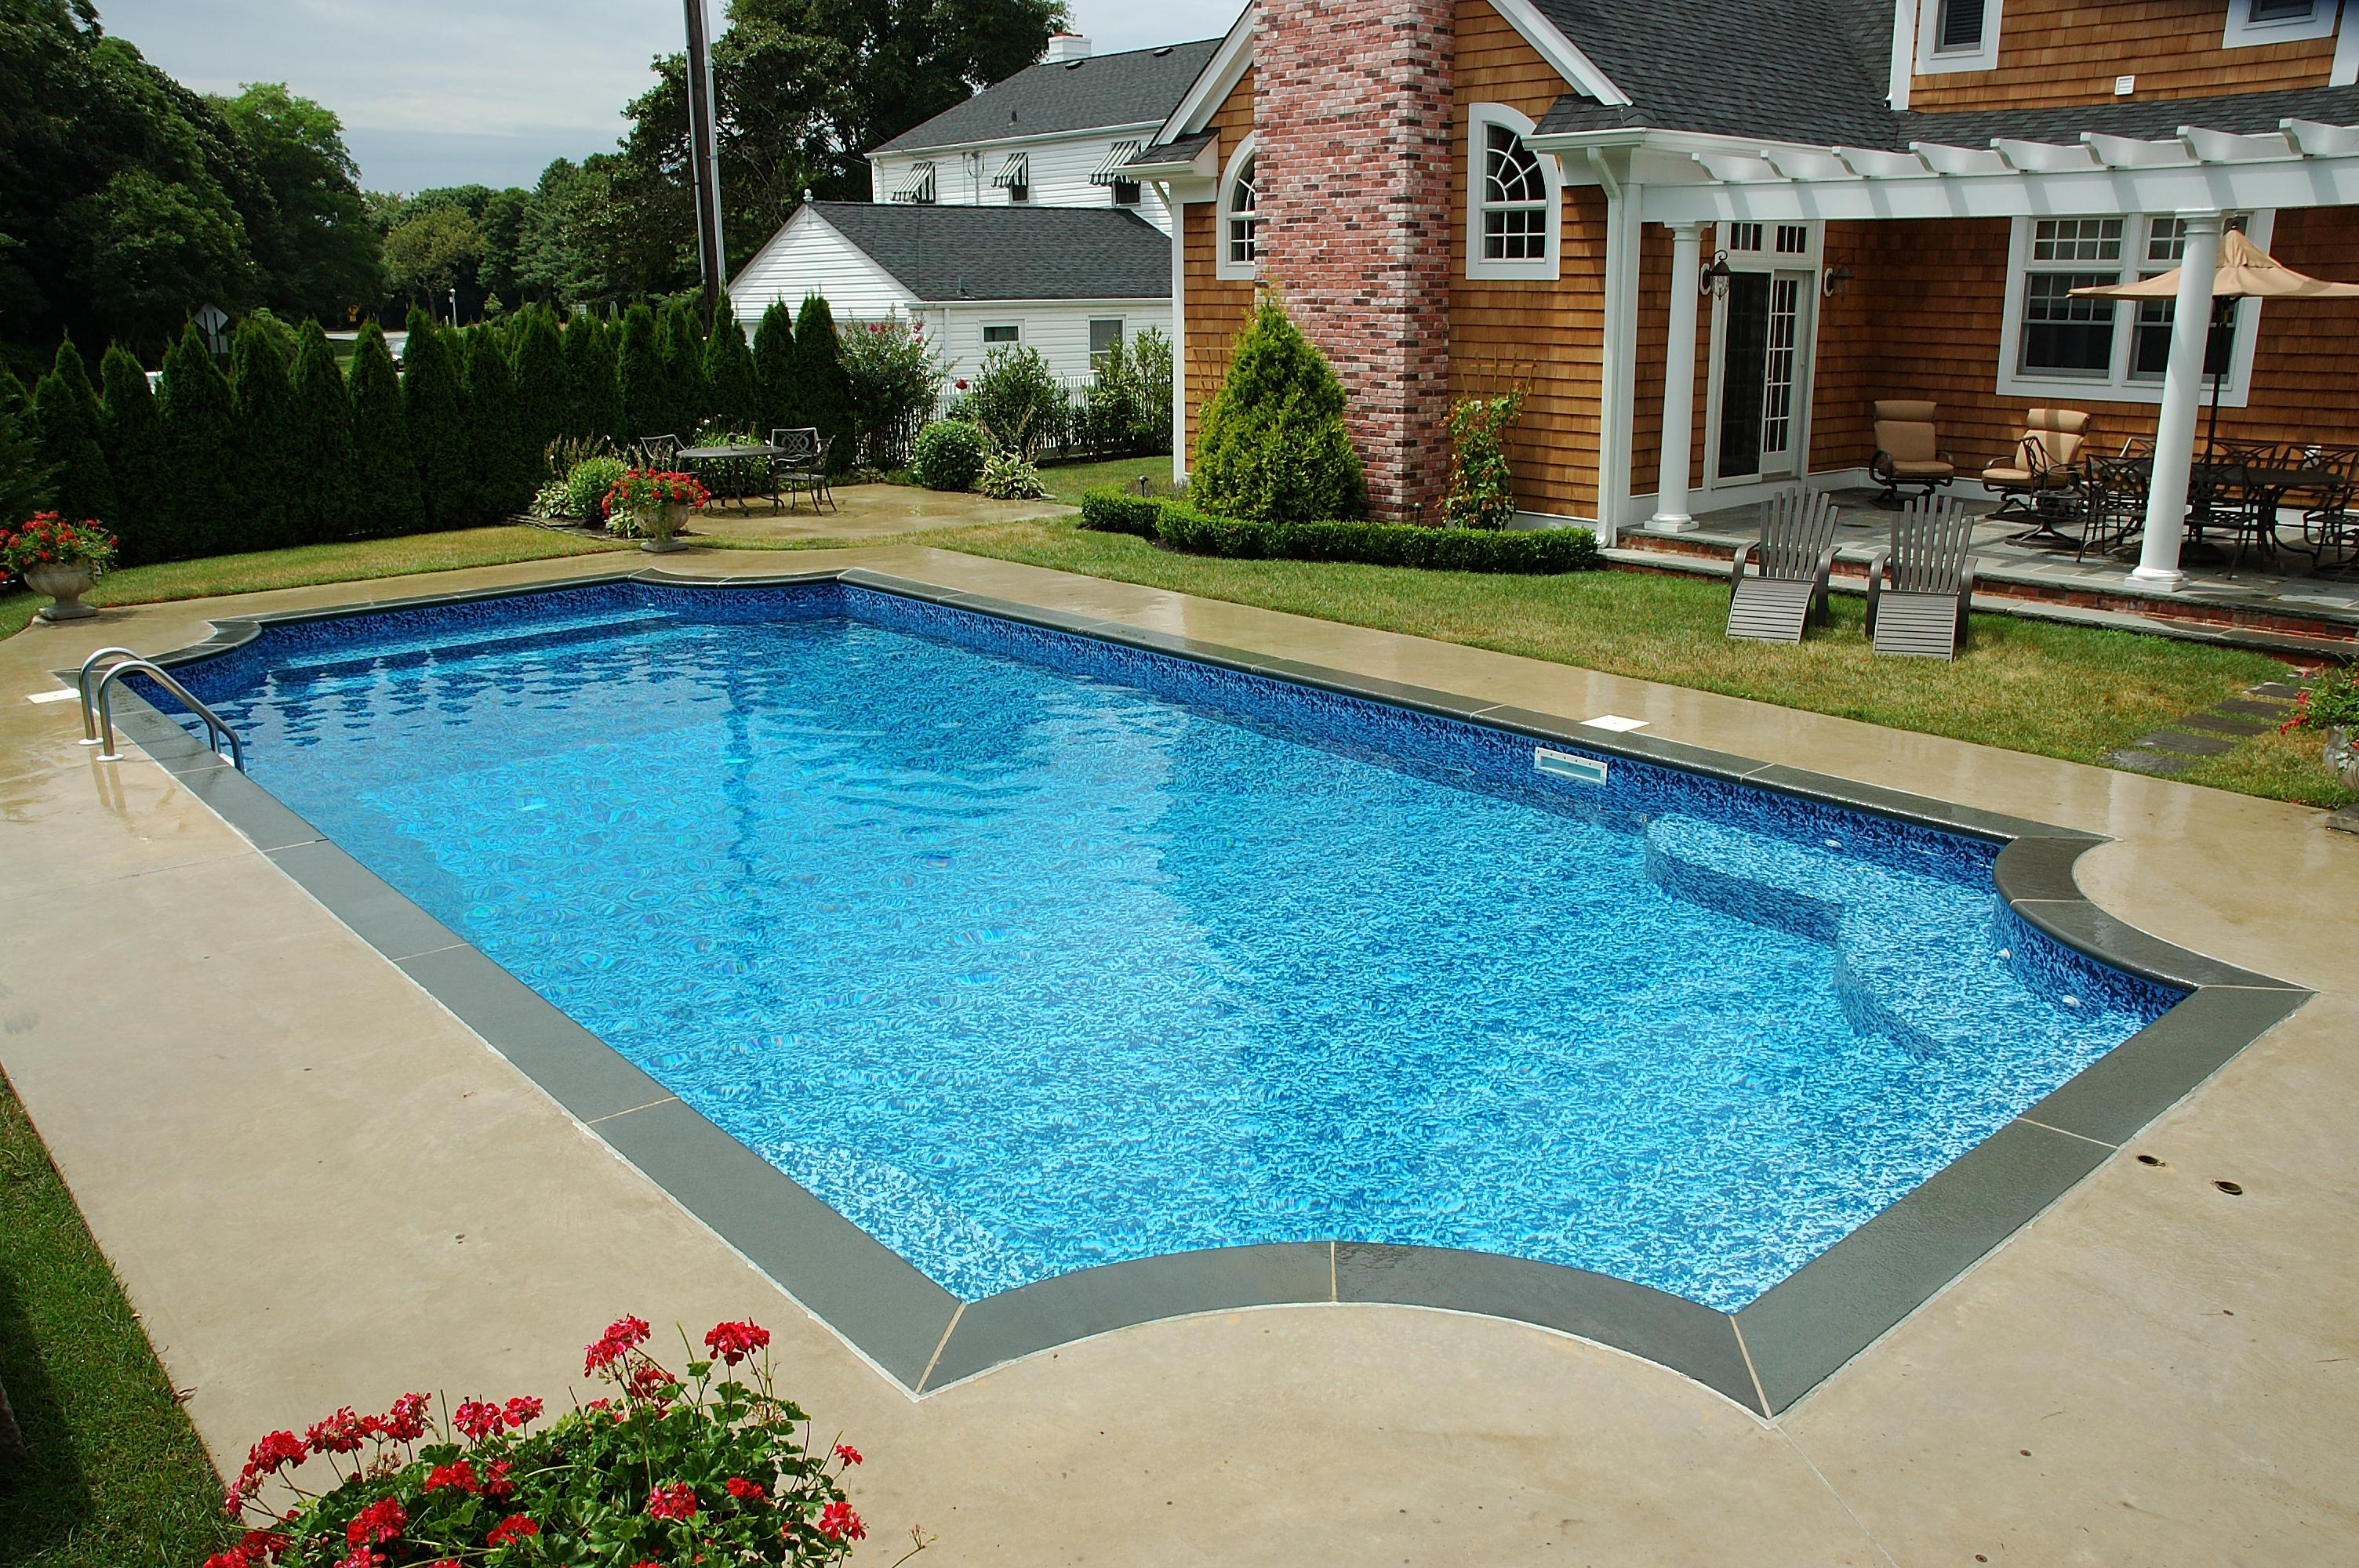 Kafko Ingorund Pools Paramount Pools Kentucky Pool Builders